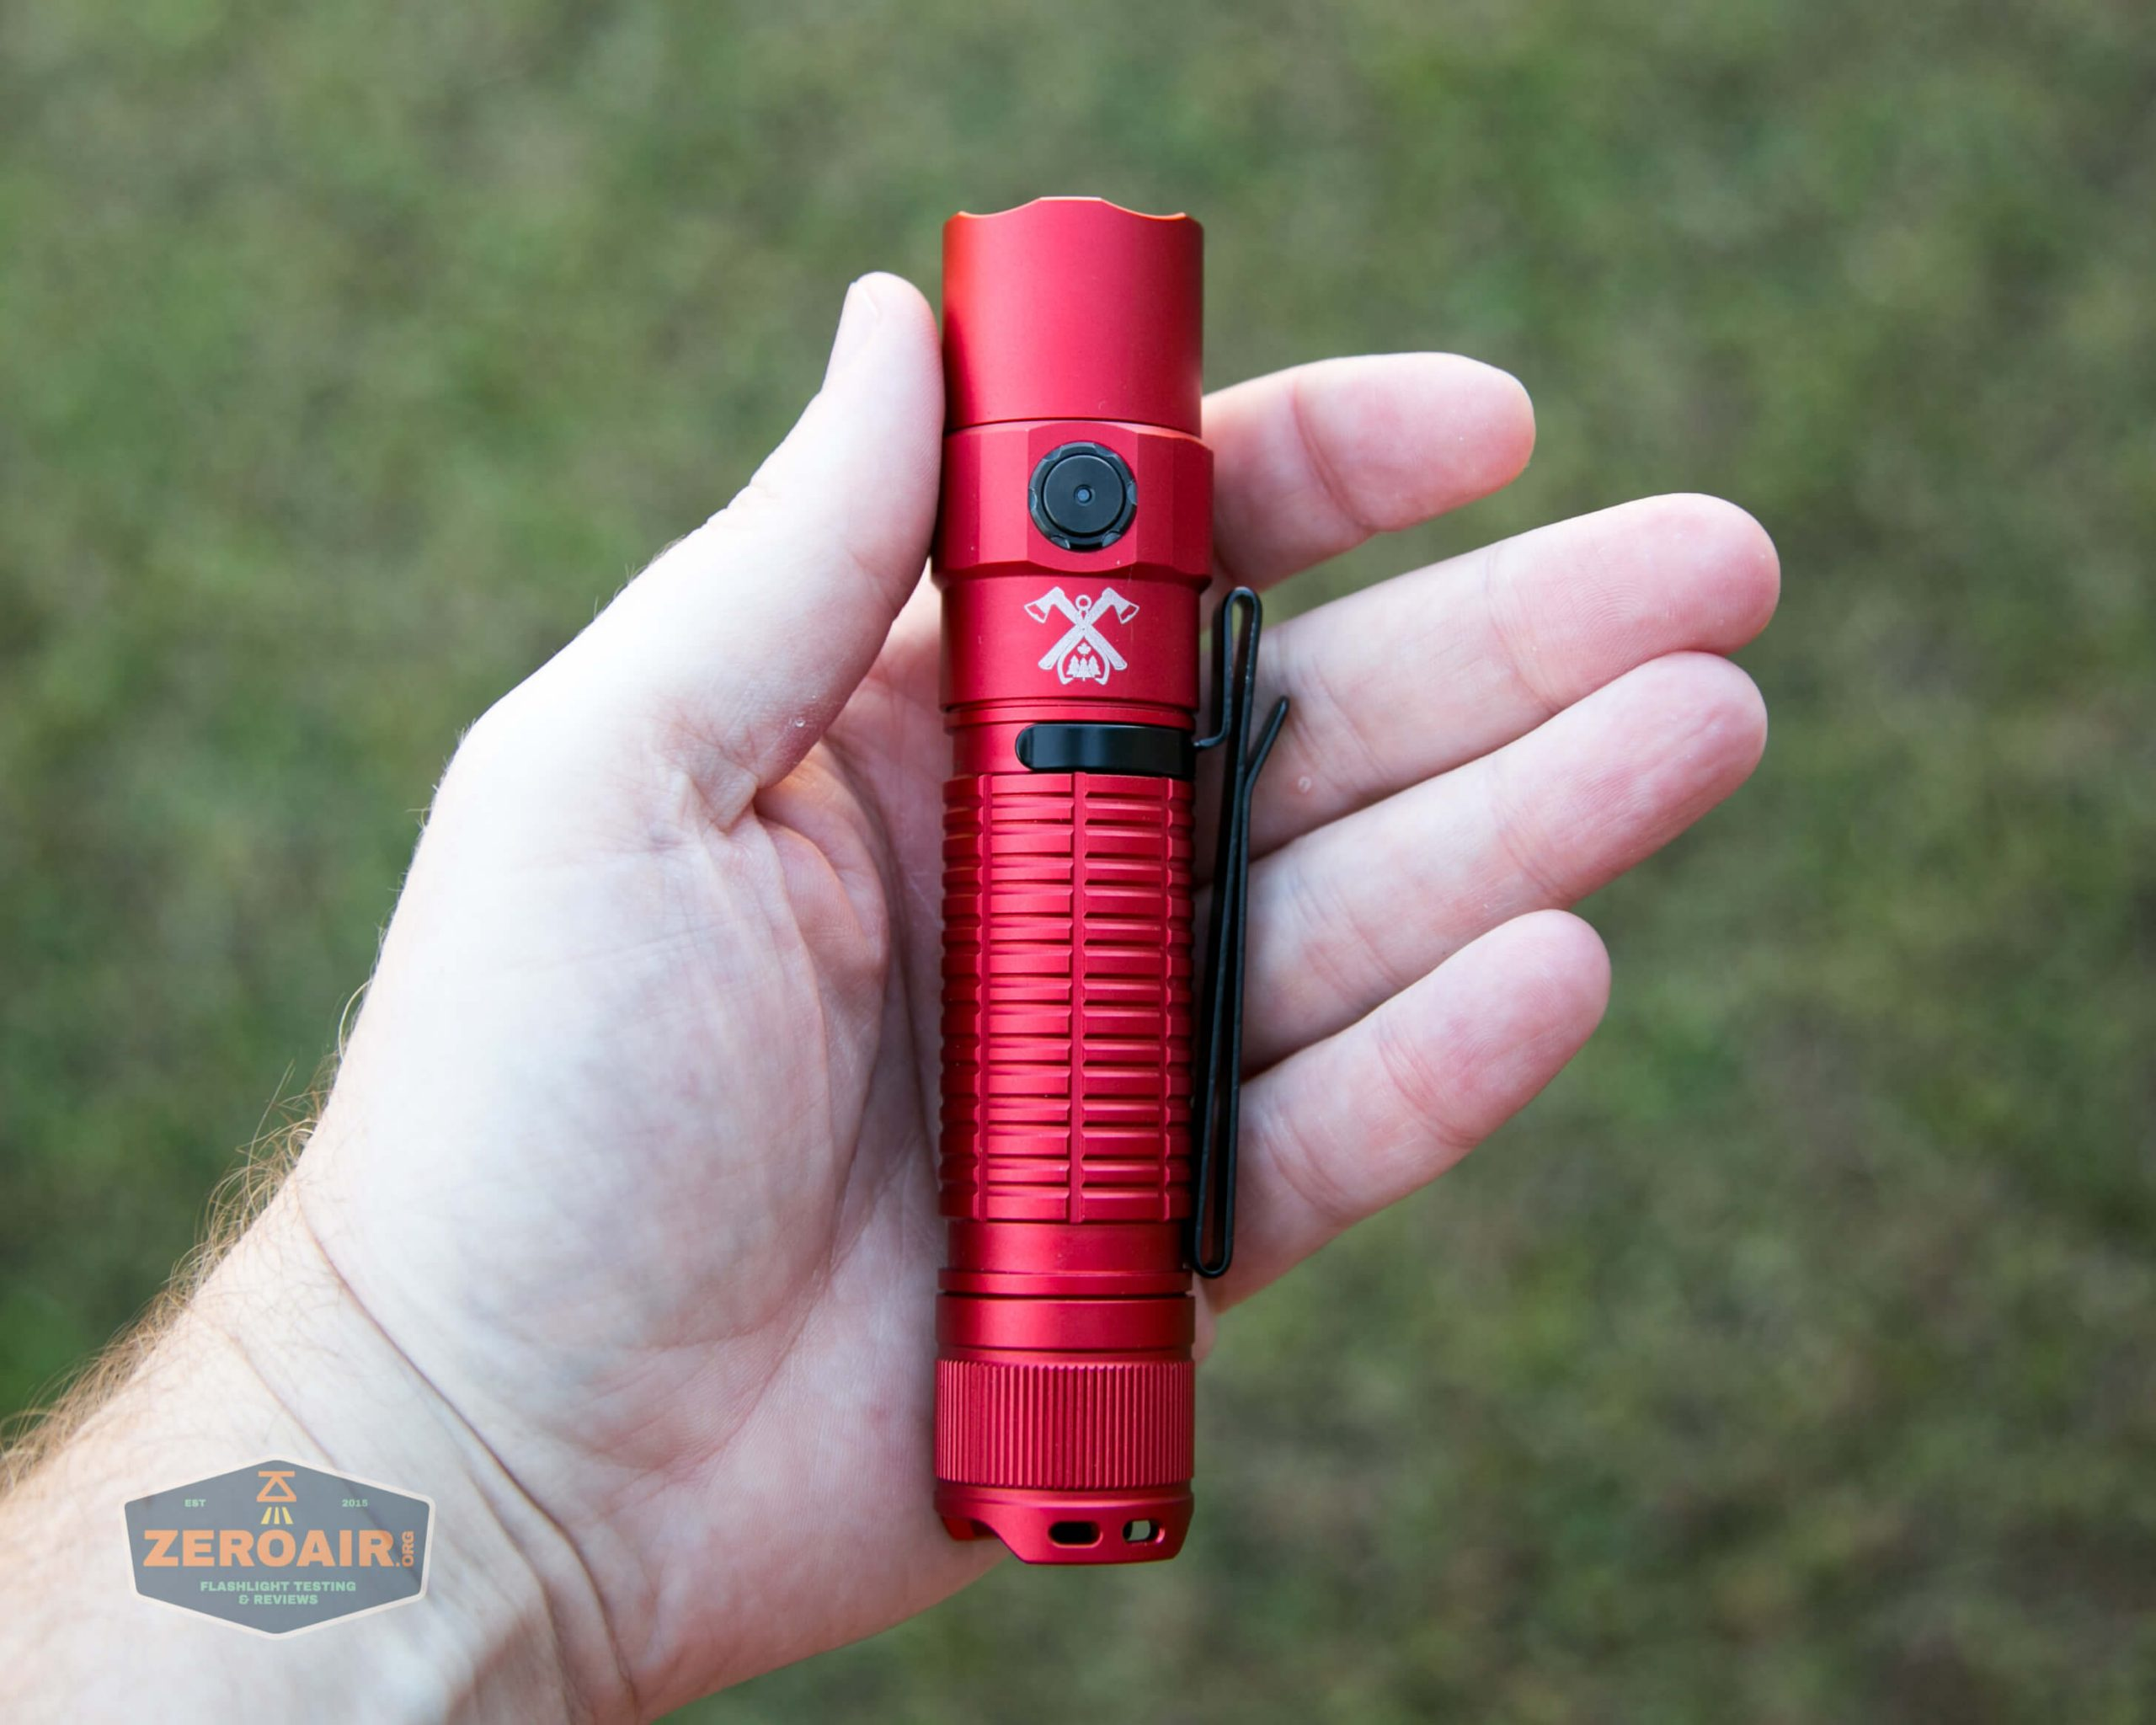 thrunite tt20 the outsider red 21700 flashlight in hand